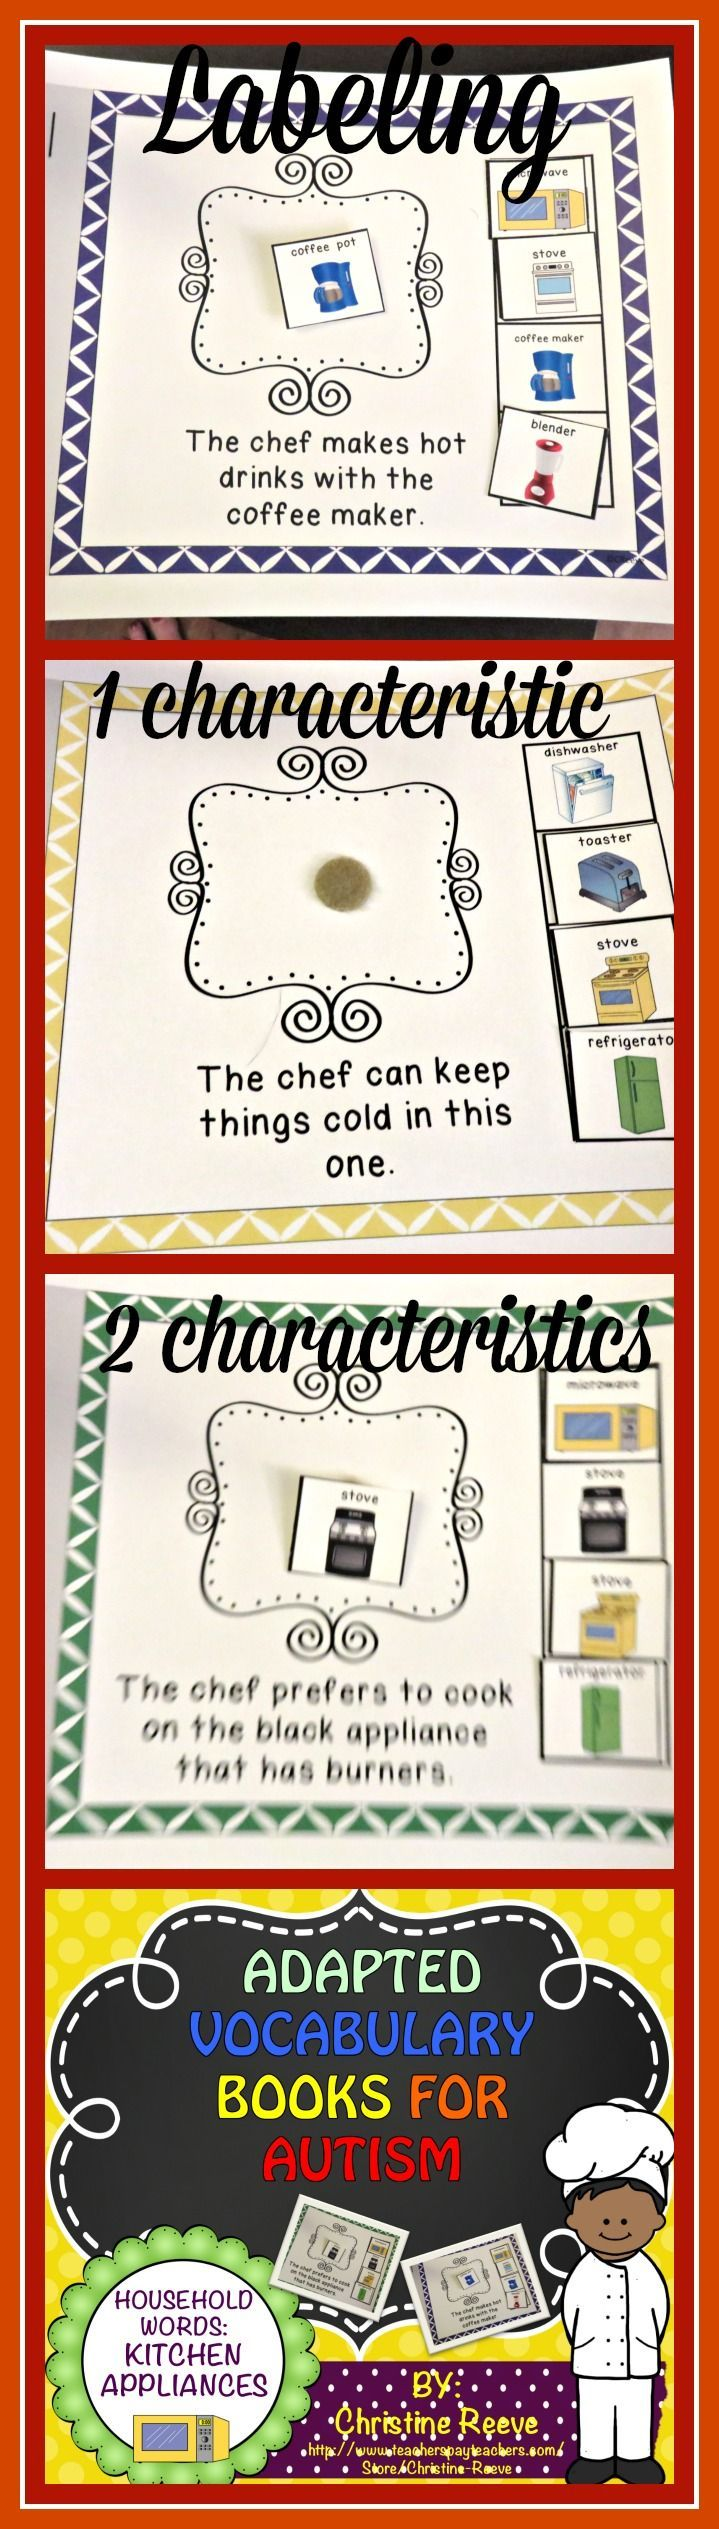 Perfect for students with autism working on basic vocabulary understanding.  This set of 3 interactive books can be used 1-1 or in groups to work on identifying kitchen items by name, characteristics and function.  $3.50